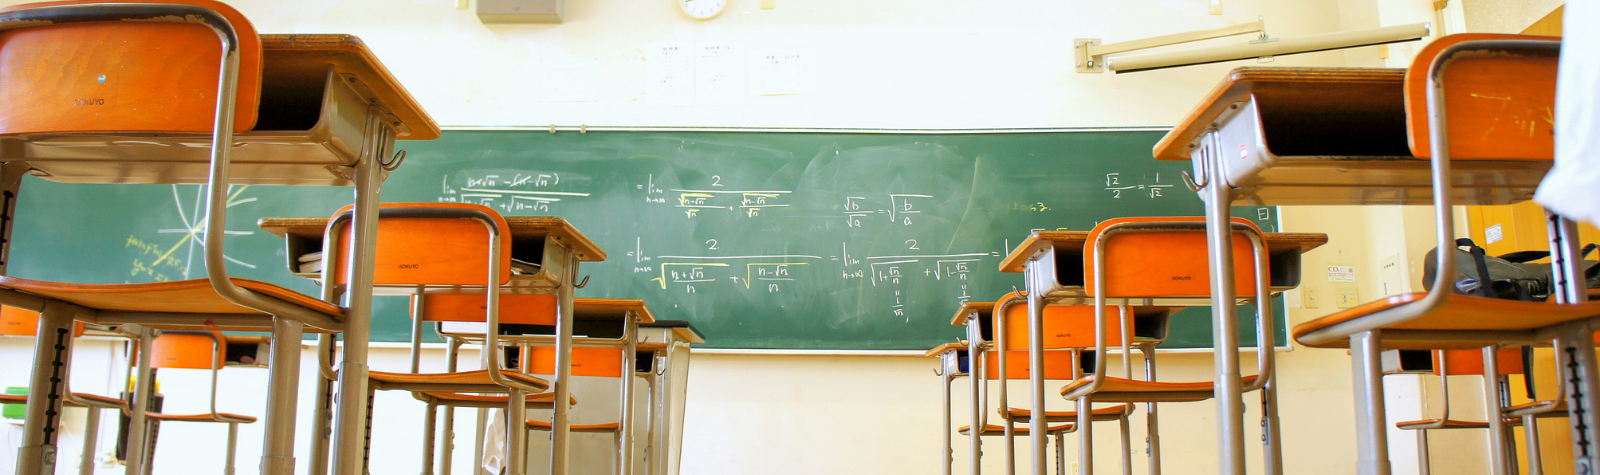 How Teachers Can Help Students Cope With the New Normal